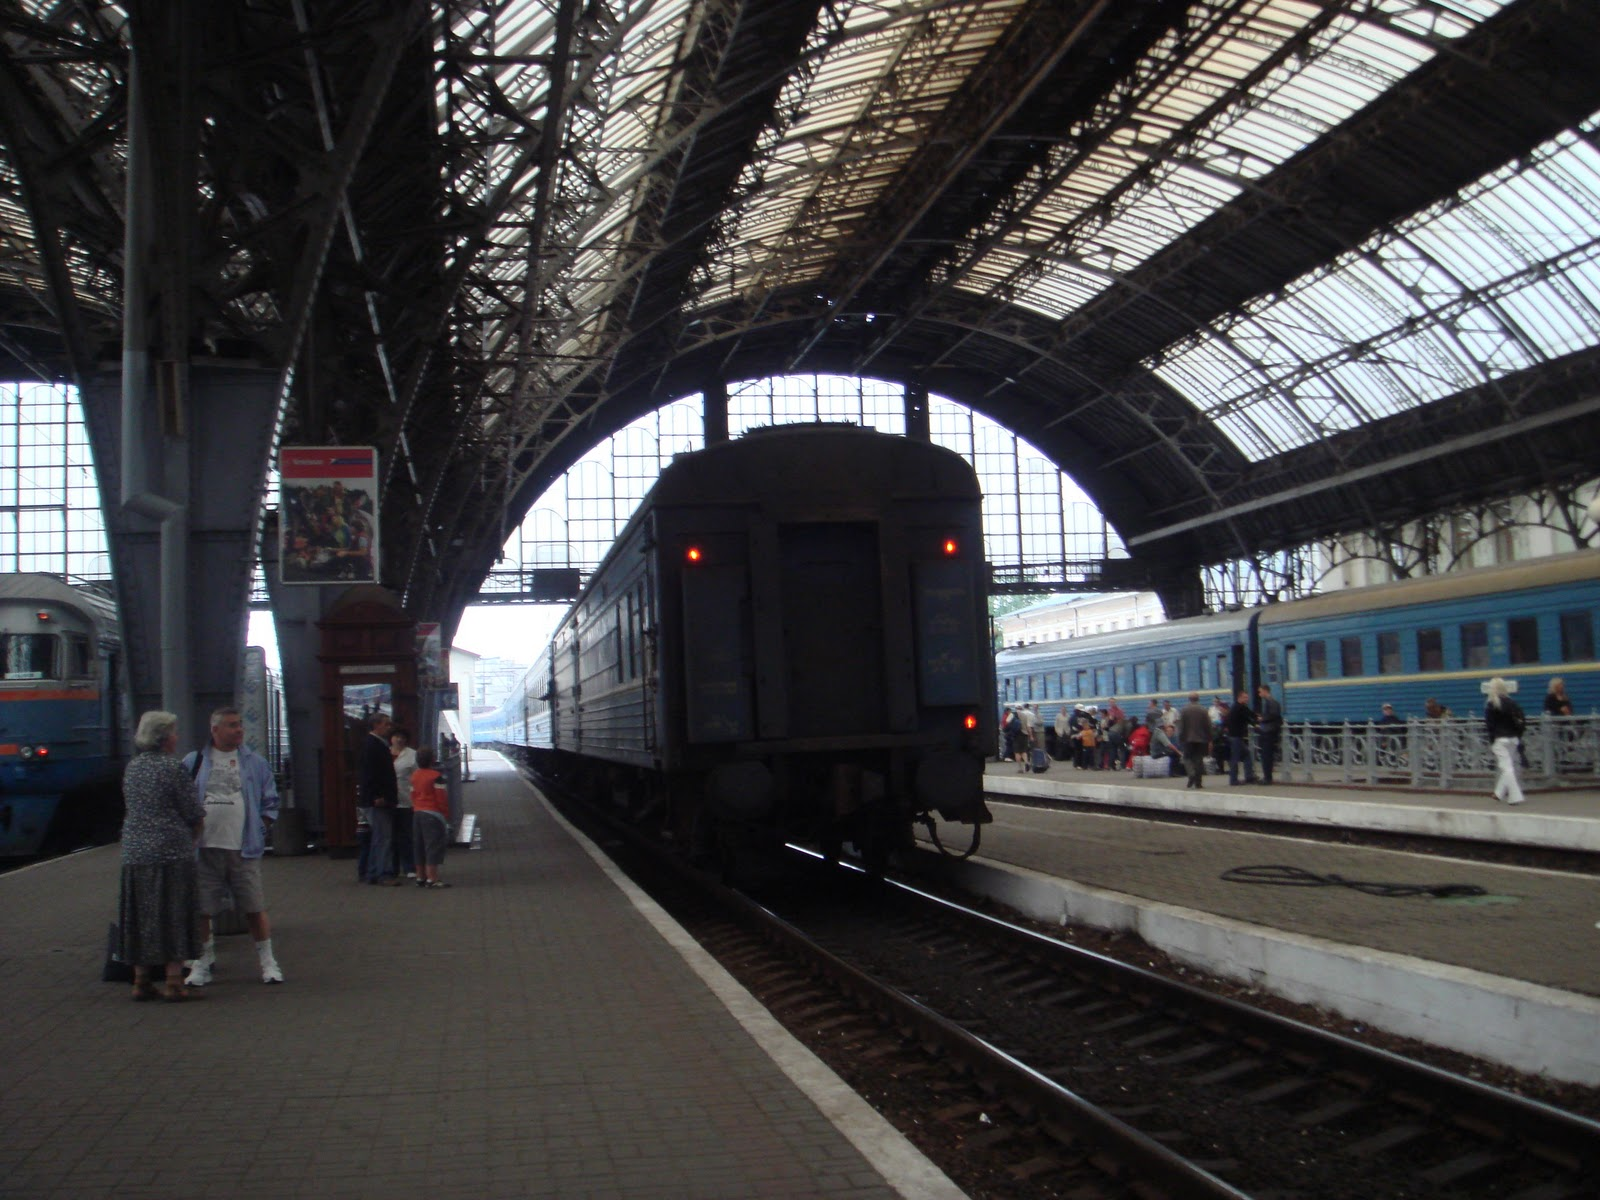 http://1.bp.blogspot.com/-TORJ4Fd3F_U/TZfxXbzzBmI/AAAAAAAAATI/iS9s-i4C0QY/s1600/Lviv_train_station_inside.jpg